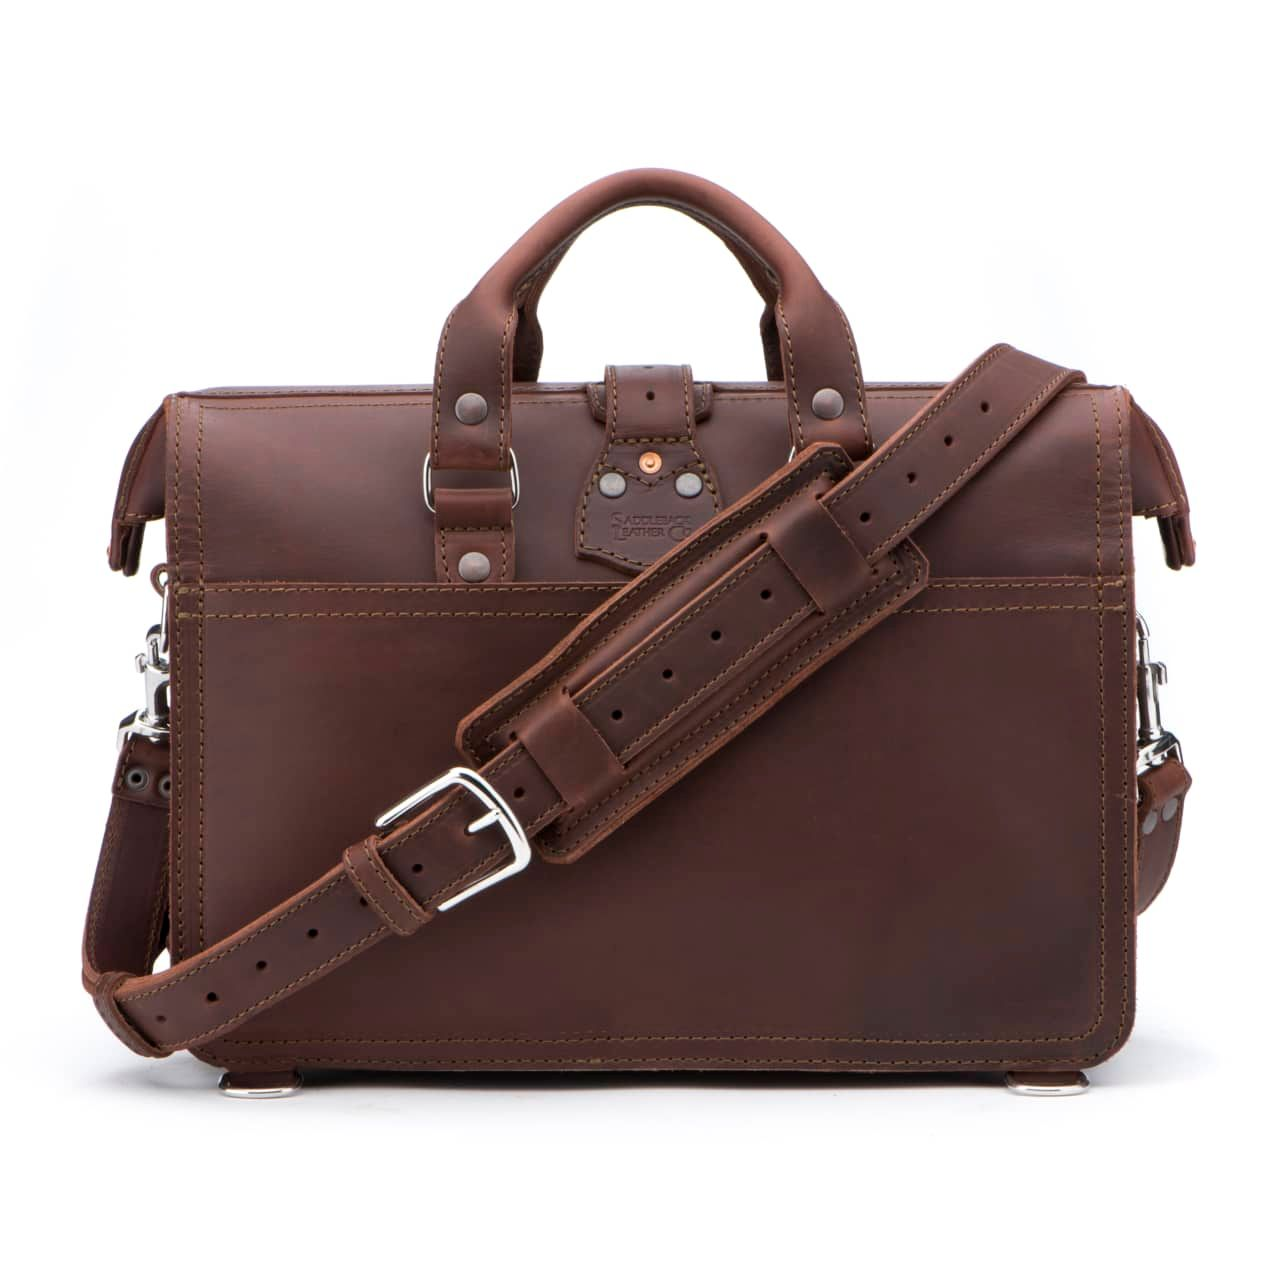 Leather Flight Bag in color Chestnut shown from the Back with the Shoulder Strap